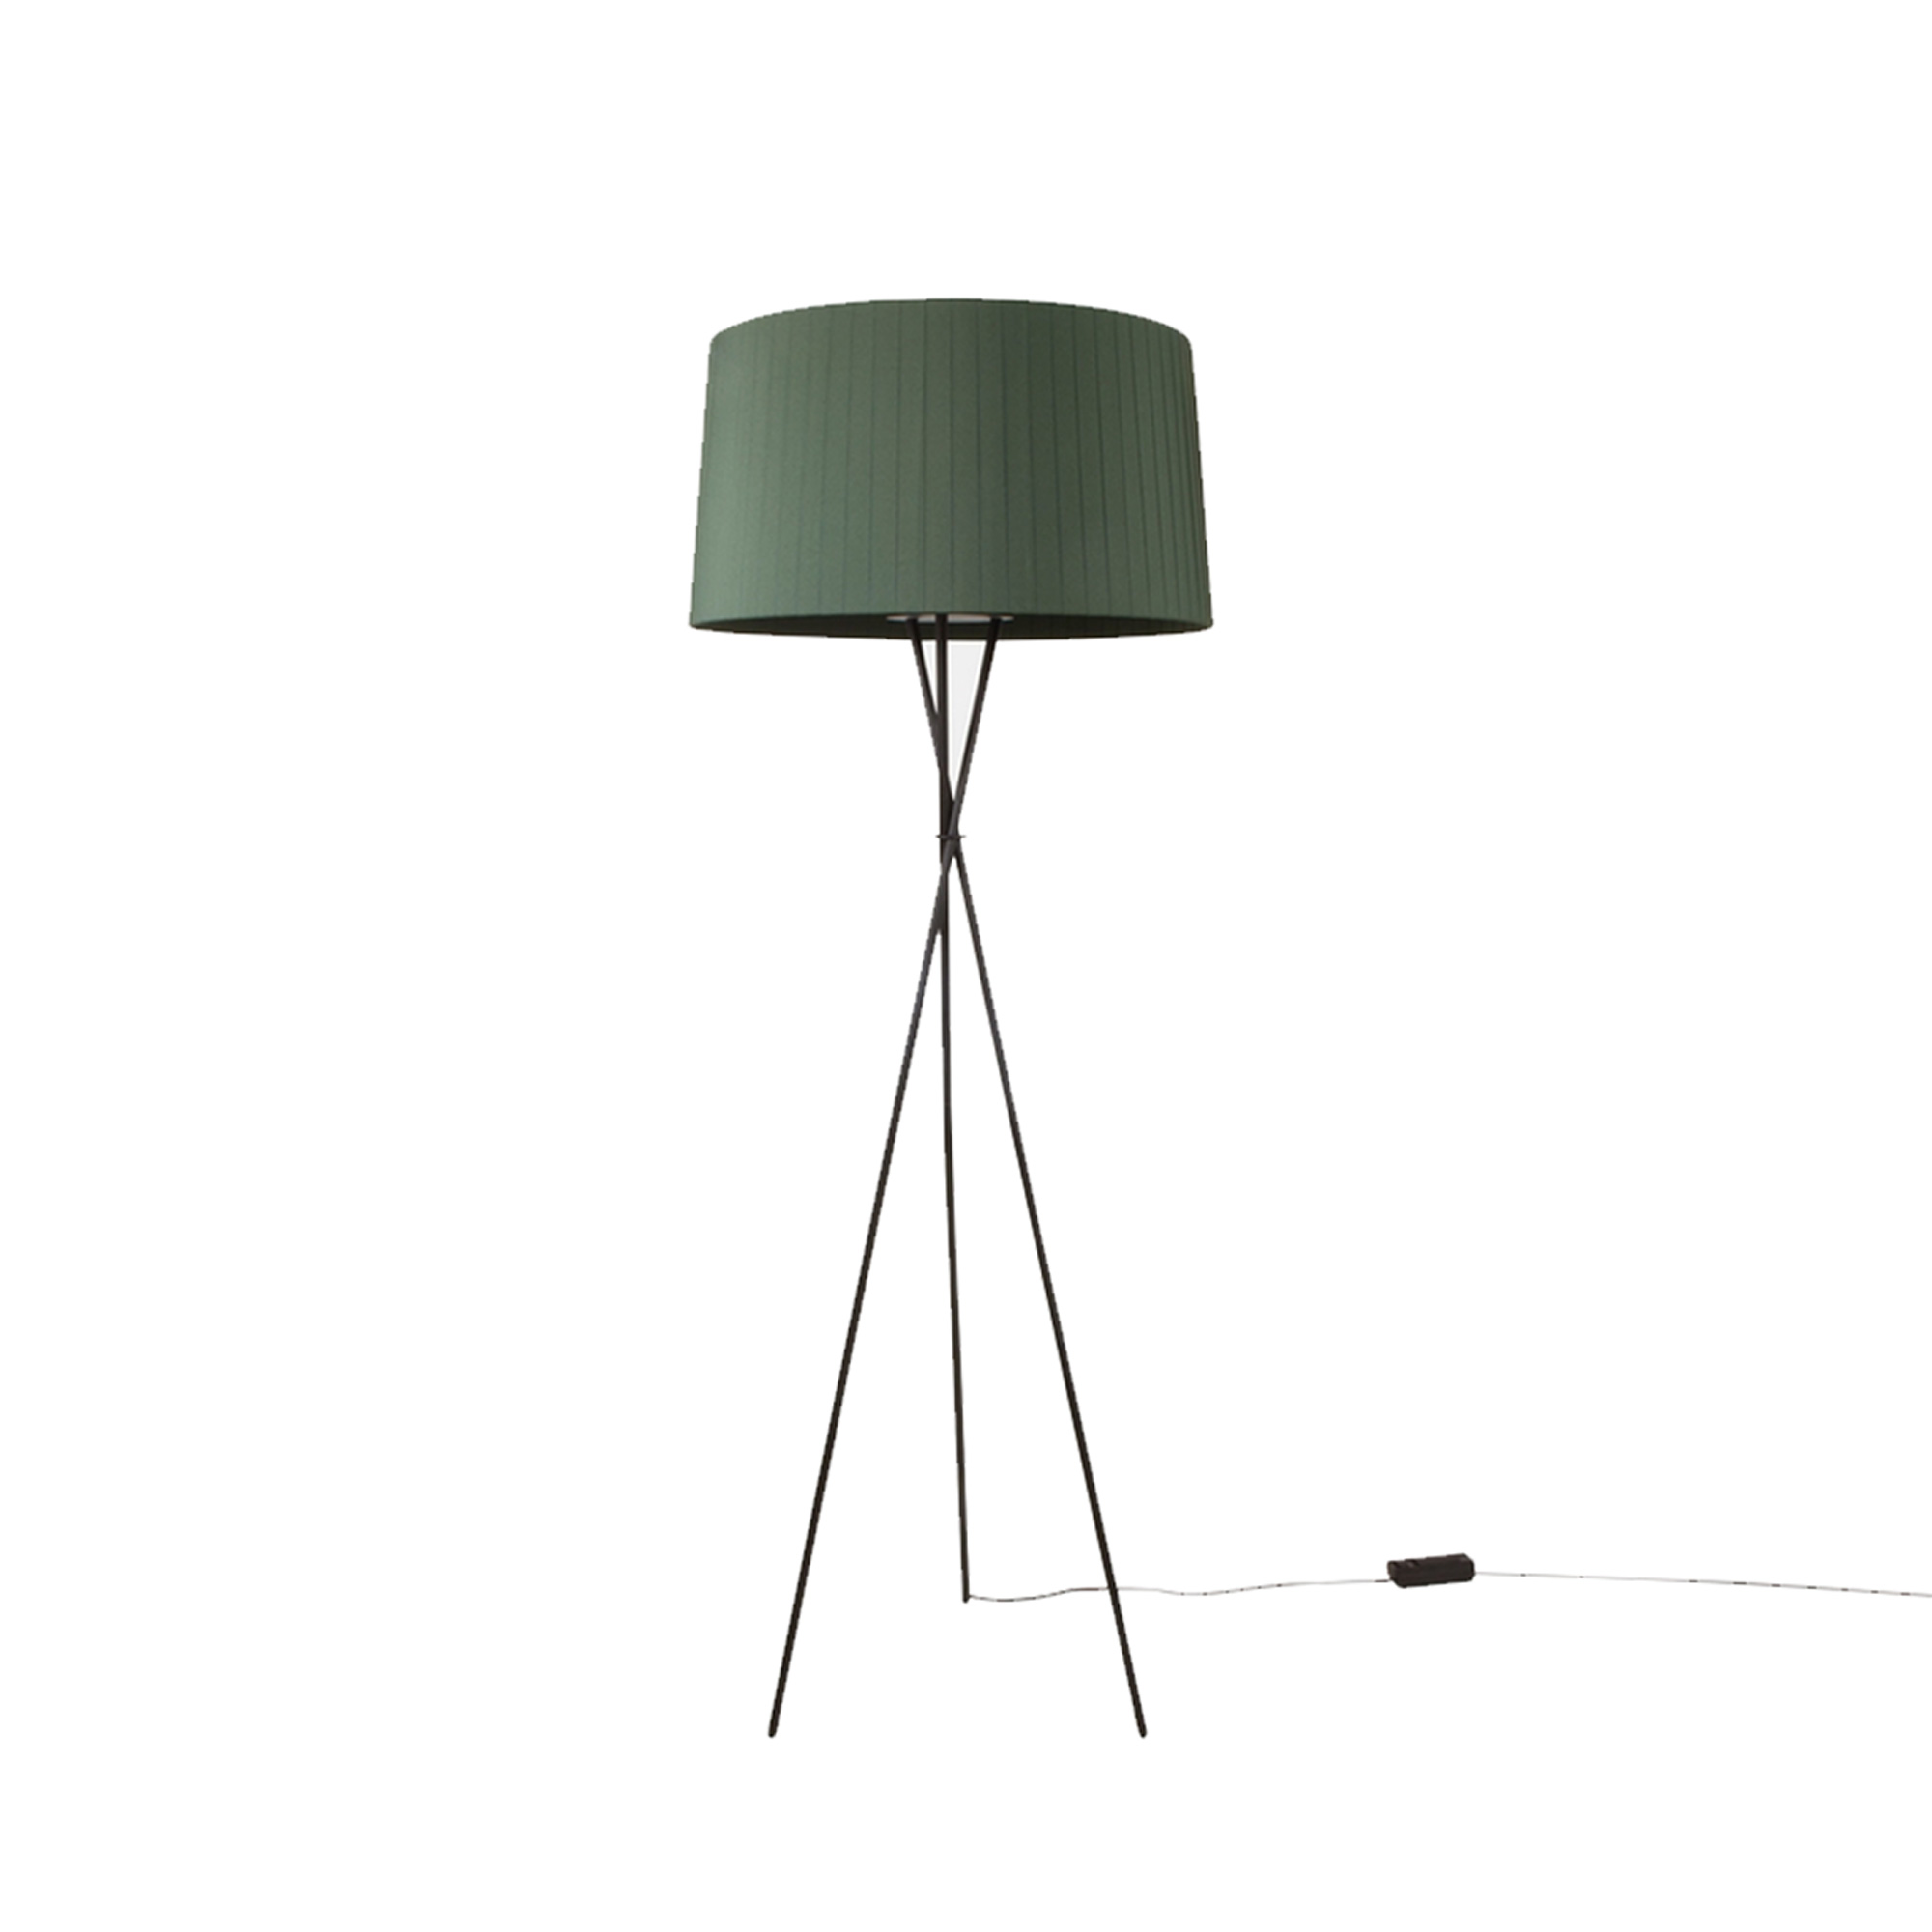 Tripode G5 Floor Lamp - Trípode is a family conceived to lend neutral spaces a warmer touch through the use of colour. This series features two sizes of table lamps, a widely known floor version (the G5), in addition to a pendant lamp version in various sizes. Designed in 1994, the GT5 pendant lamp was the first of a large family created as an alternative to the use of cardboard, methacrylate, or solid textile shades; the use of handmade cotton ribbon reincorporates traditional craftsmanship. With the light on, the shade provides a warm light, rich in nuances. With the light off, this lamp is a sculptural statement piece that enhances the room.  | Matter of Stuff